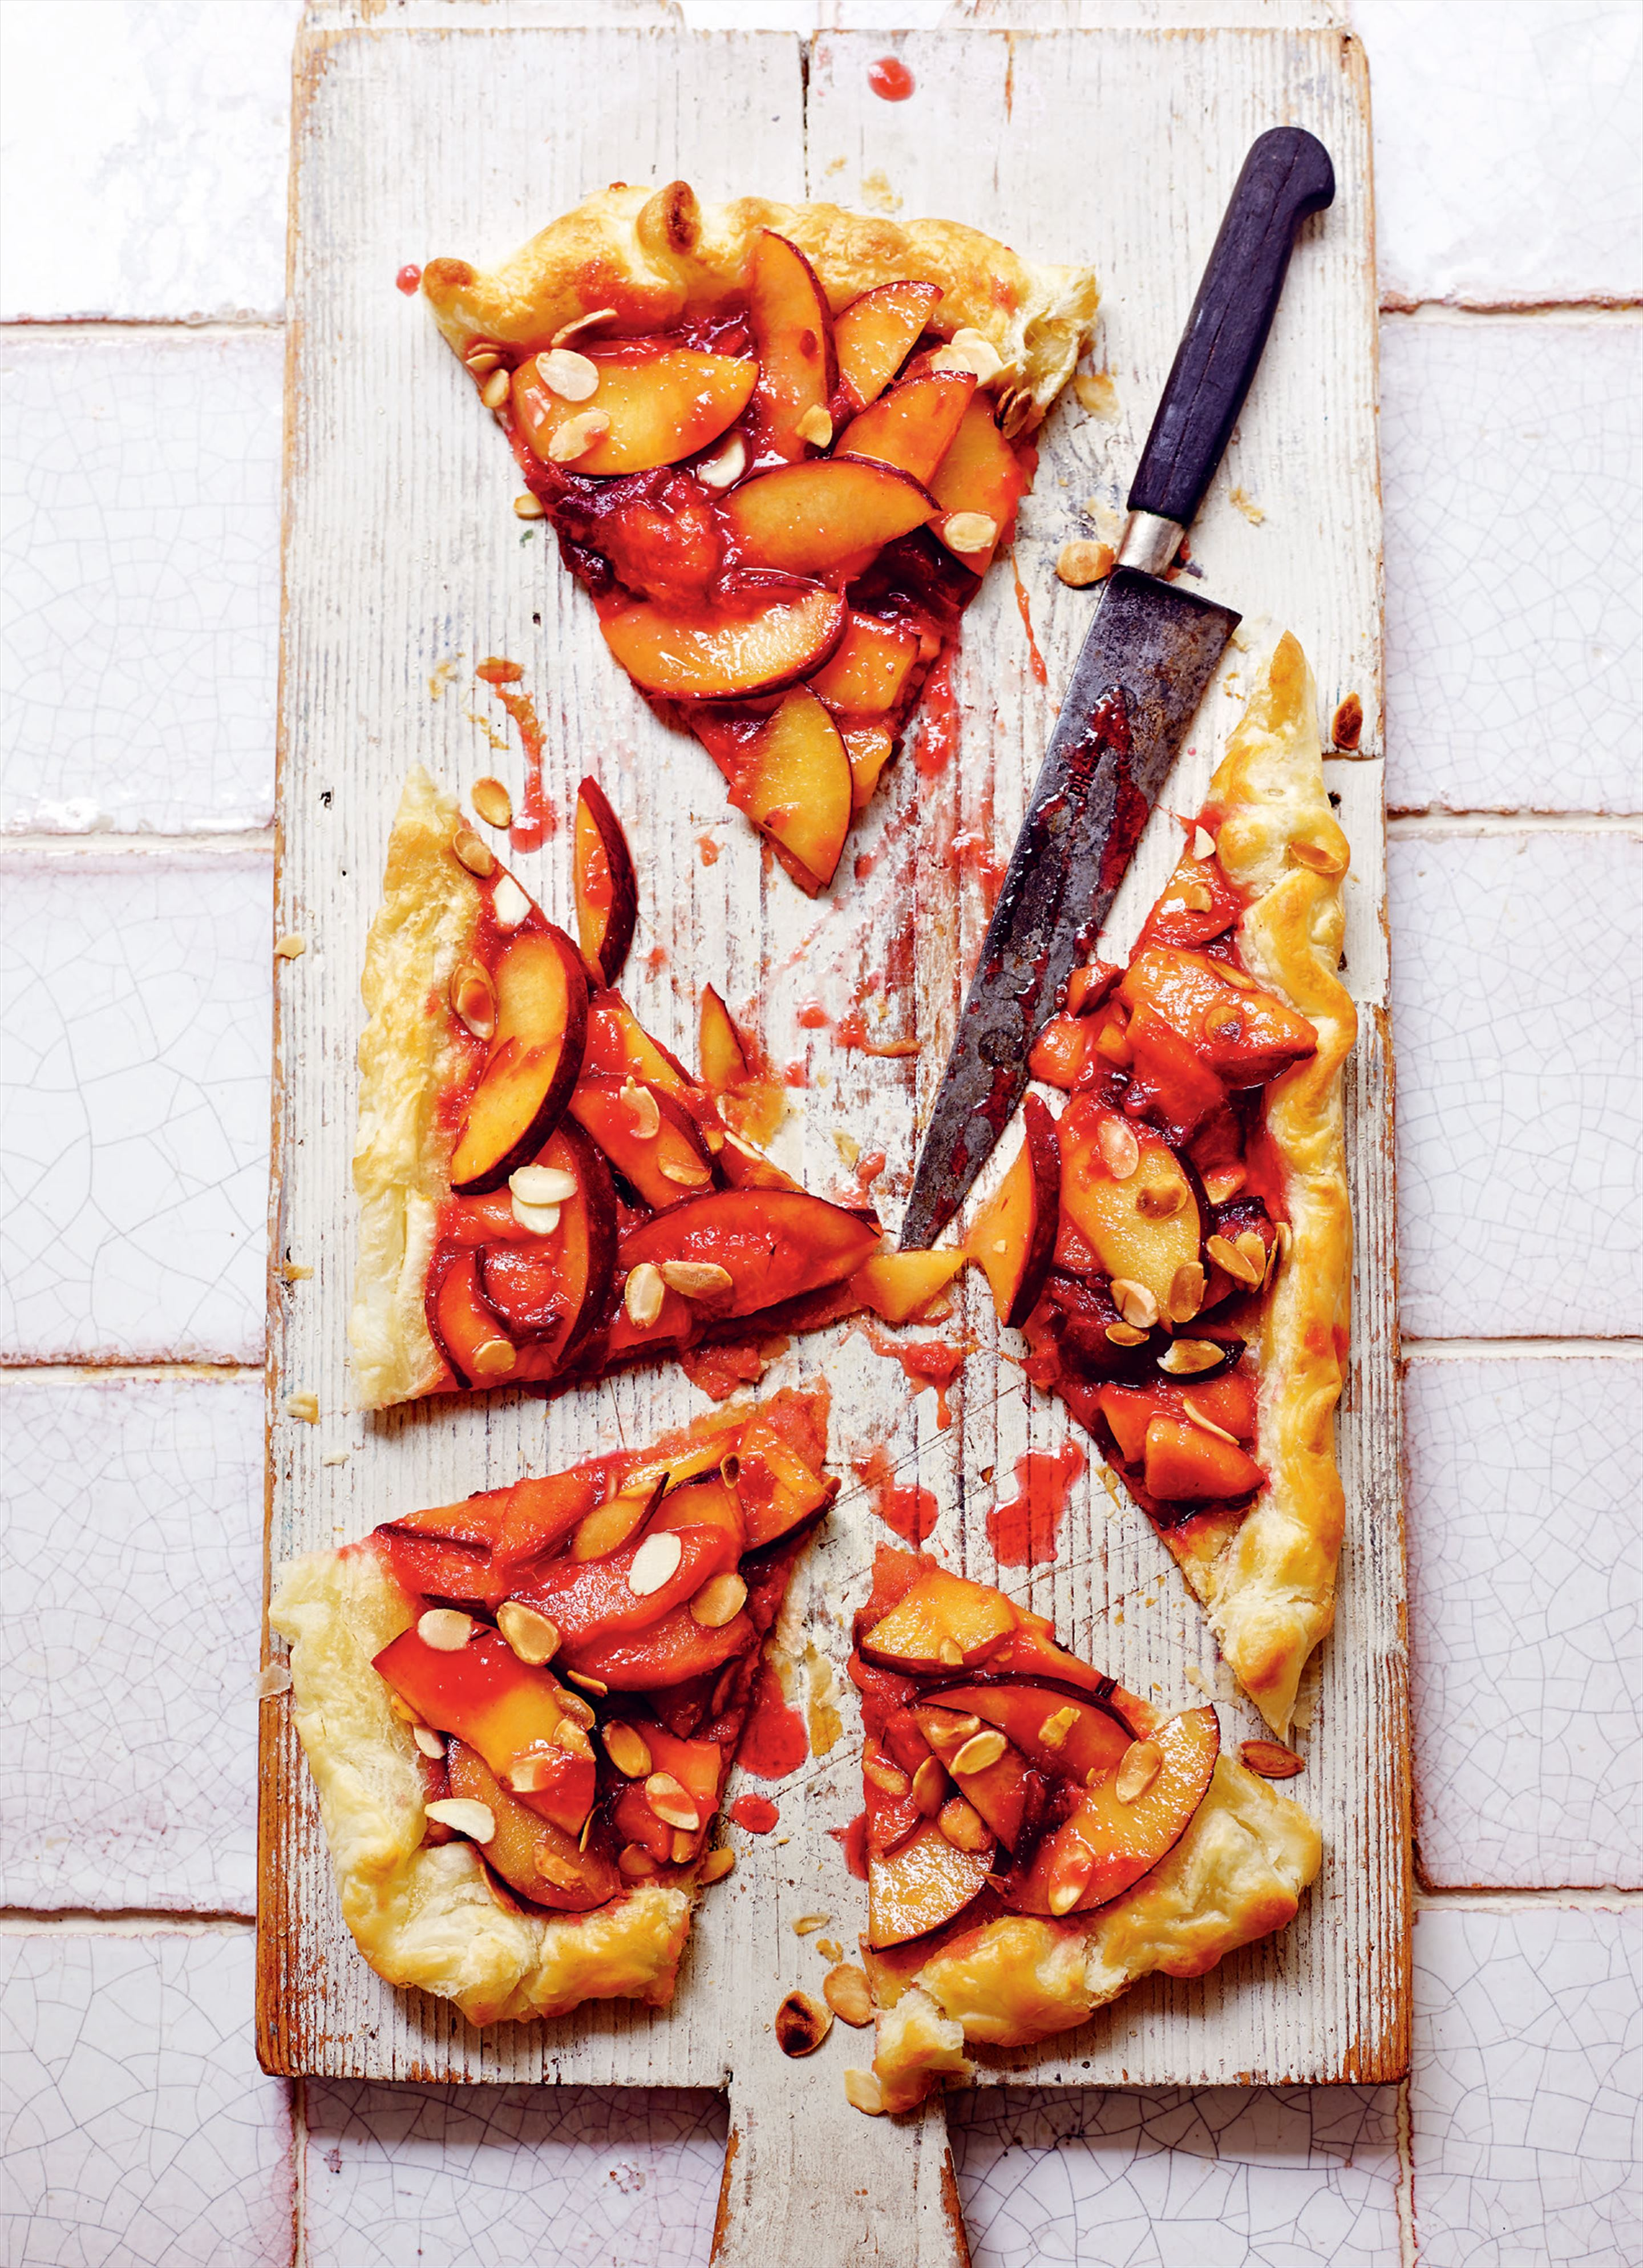 Plum and almond galette